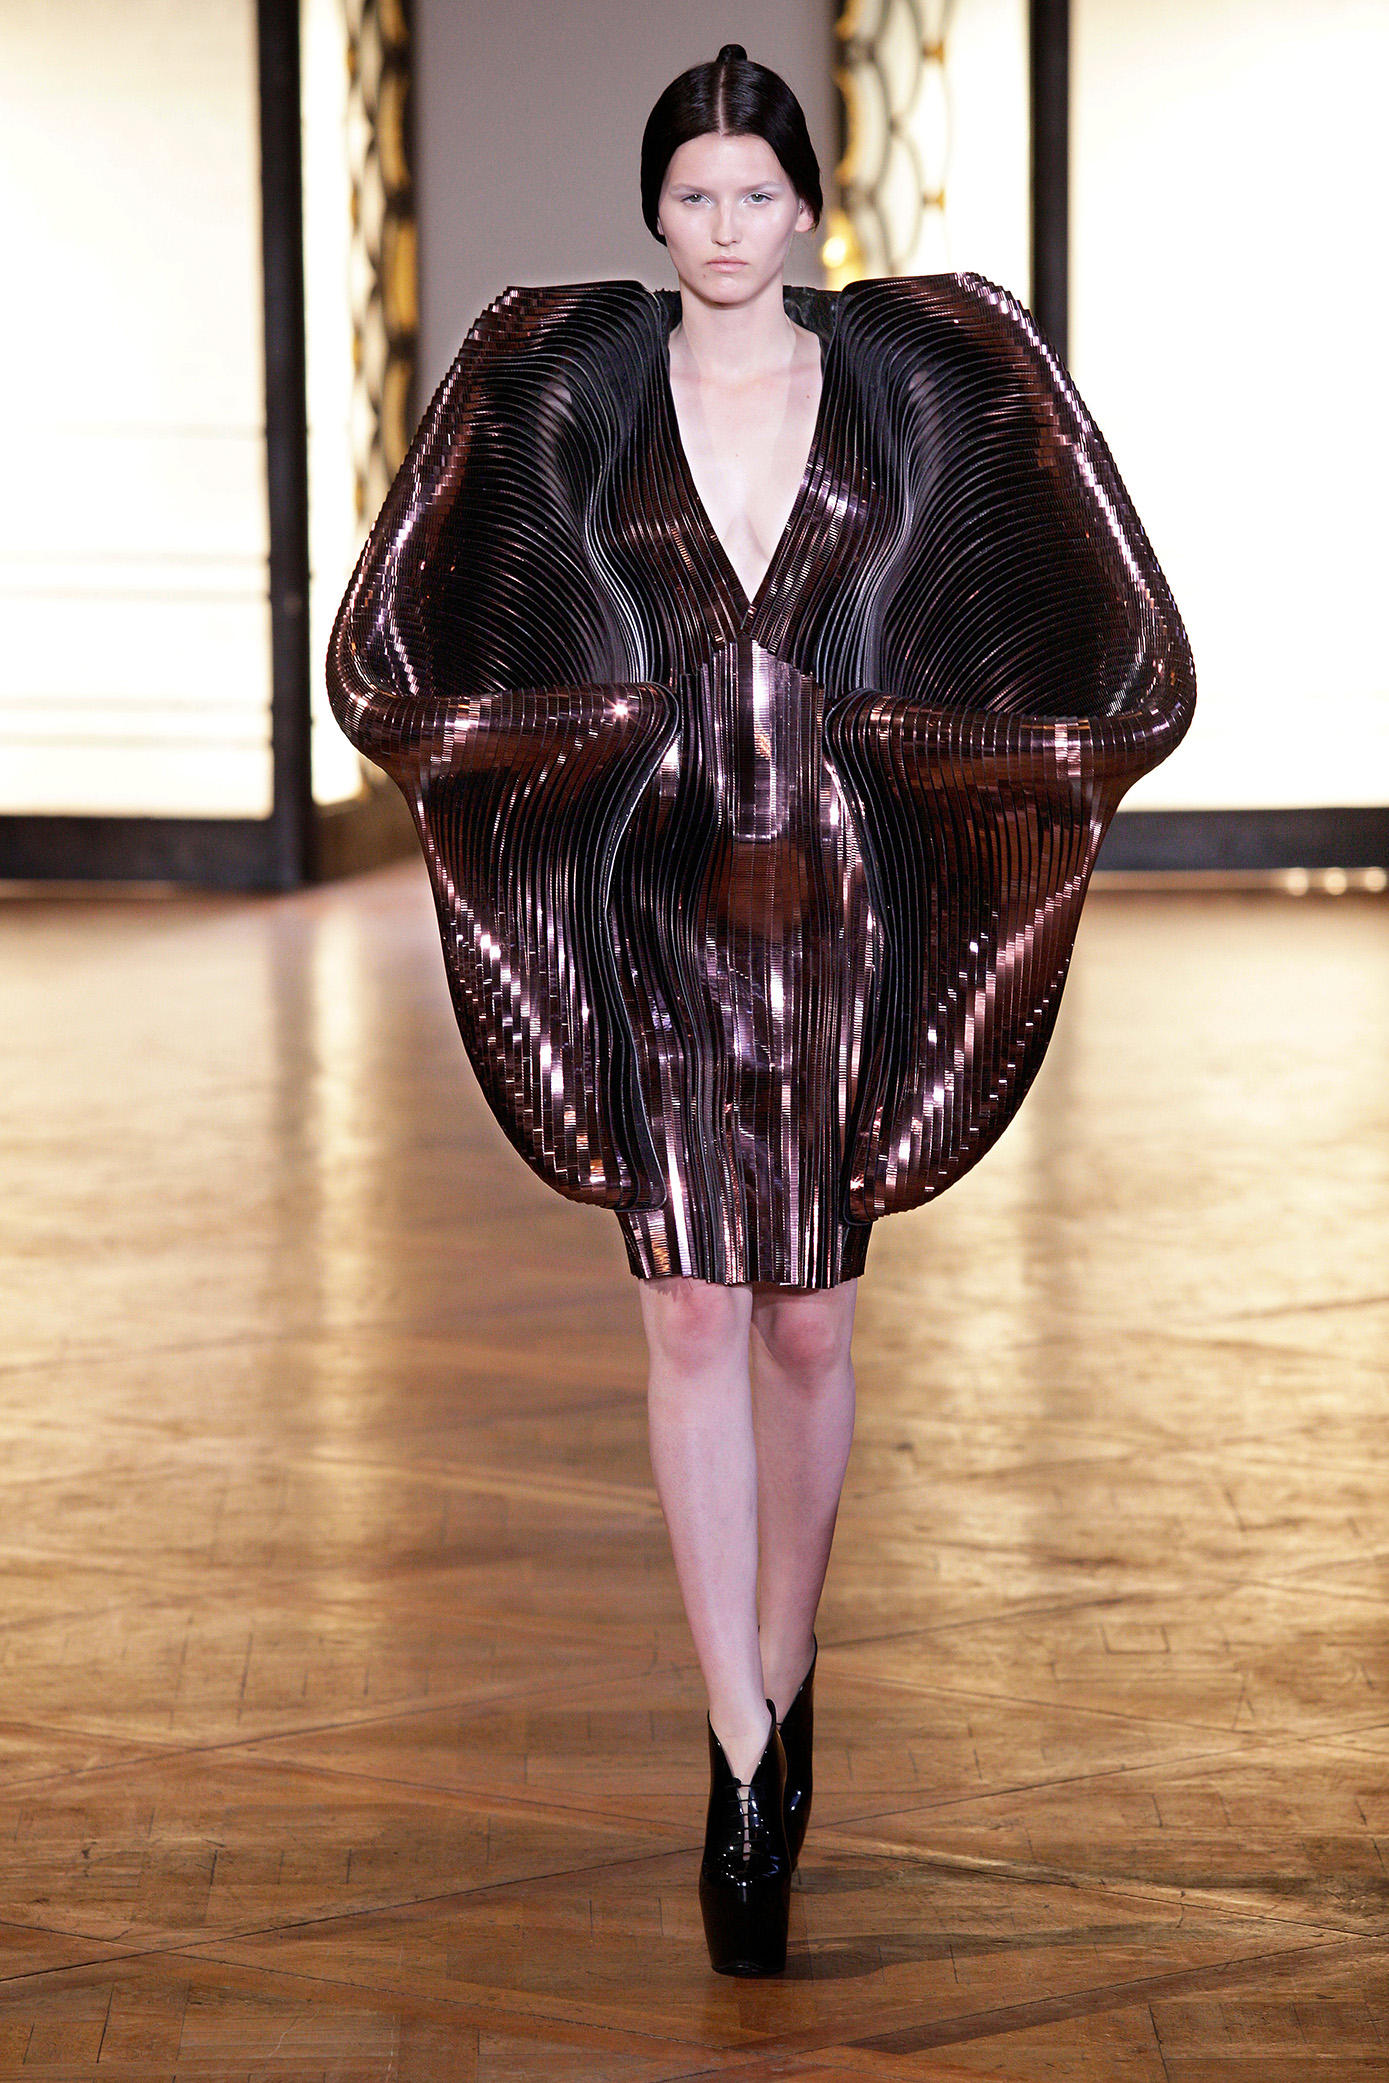 Iris van Herpen, Hybrid Holism, July 2012. Photo: © Michel Zoeter.